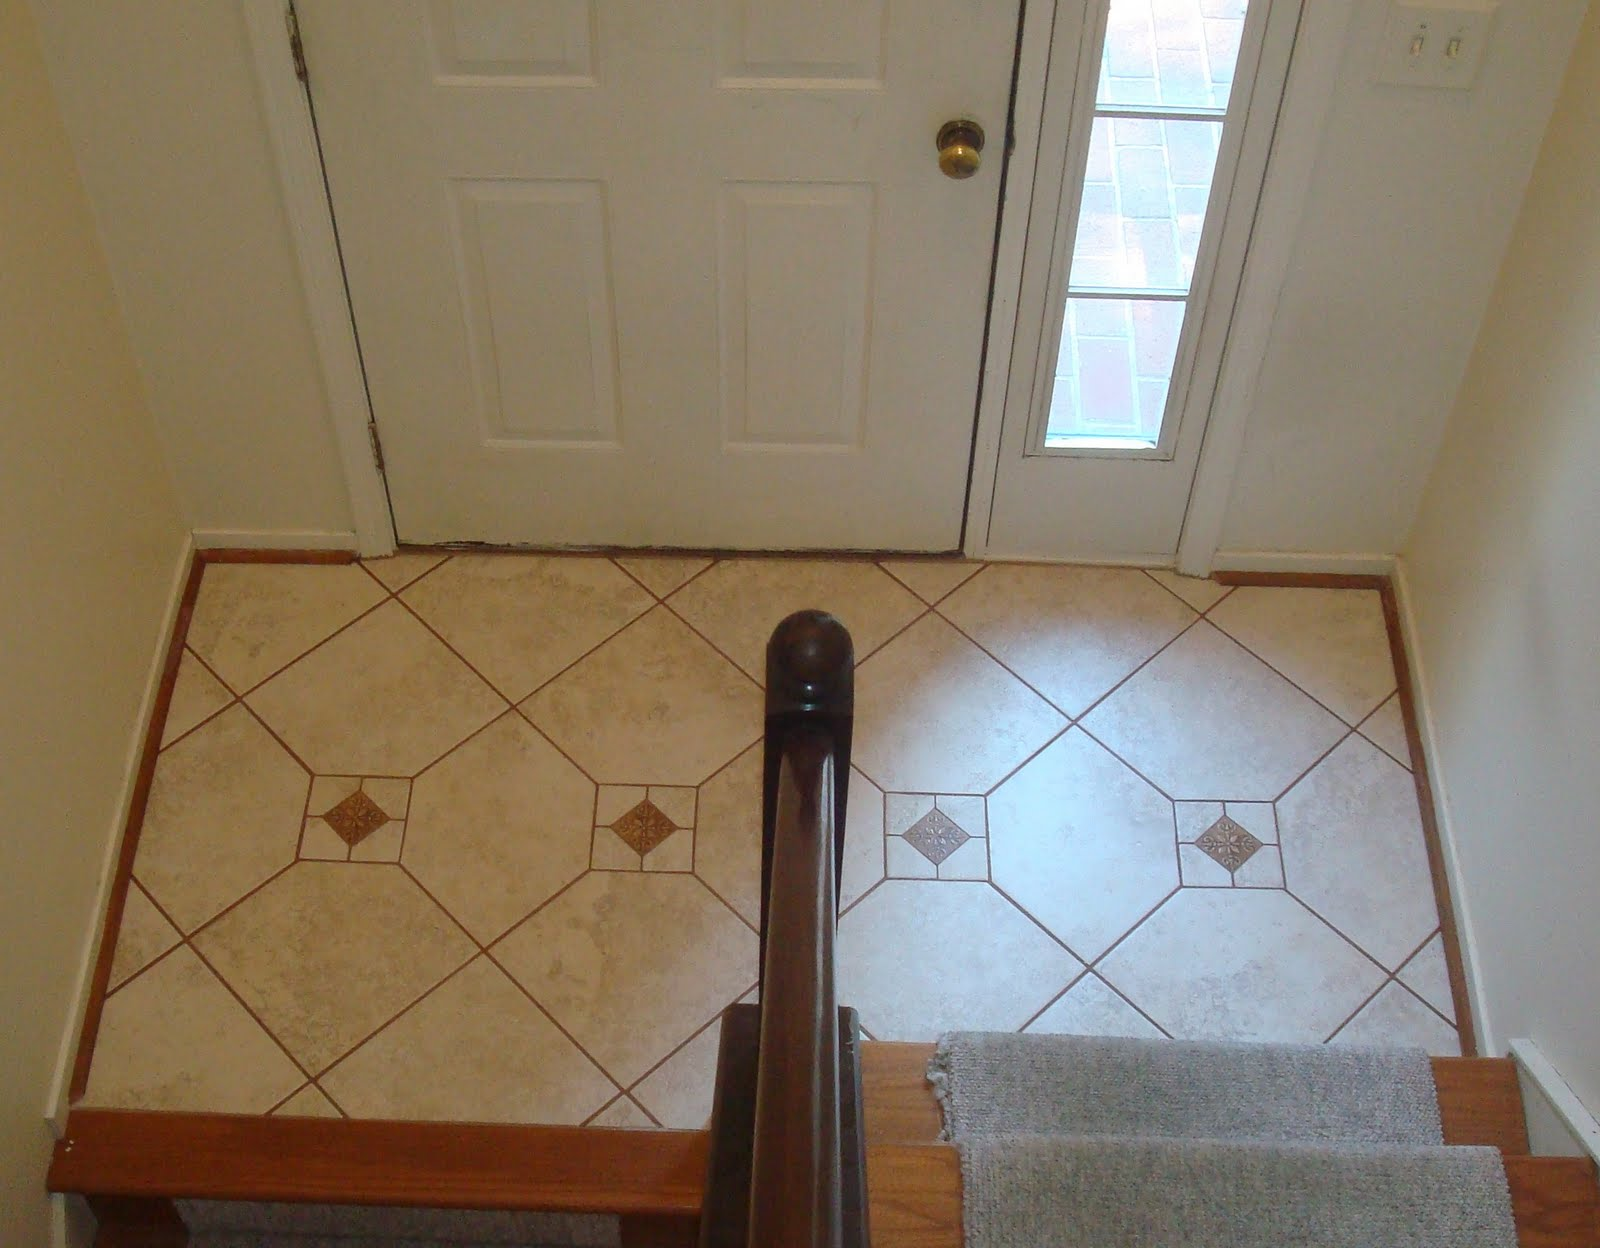 Foyer Tile Design Ideas awesome foyer tile designs foyer design design ideas electoral7com Finest Small Entryway Tile Ideas Pictures To Pin On Pinterest Pinsdaddy With Entryway Floor Ideas